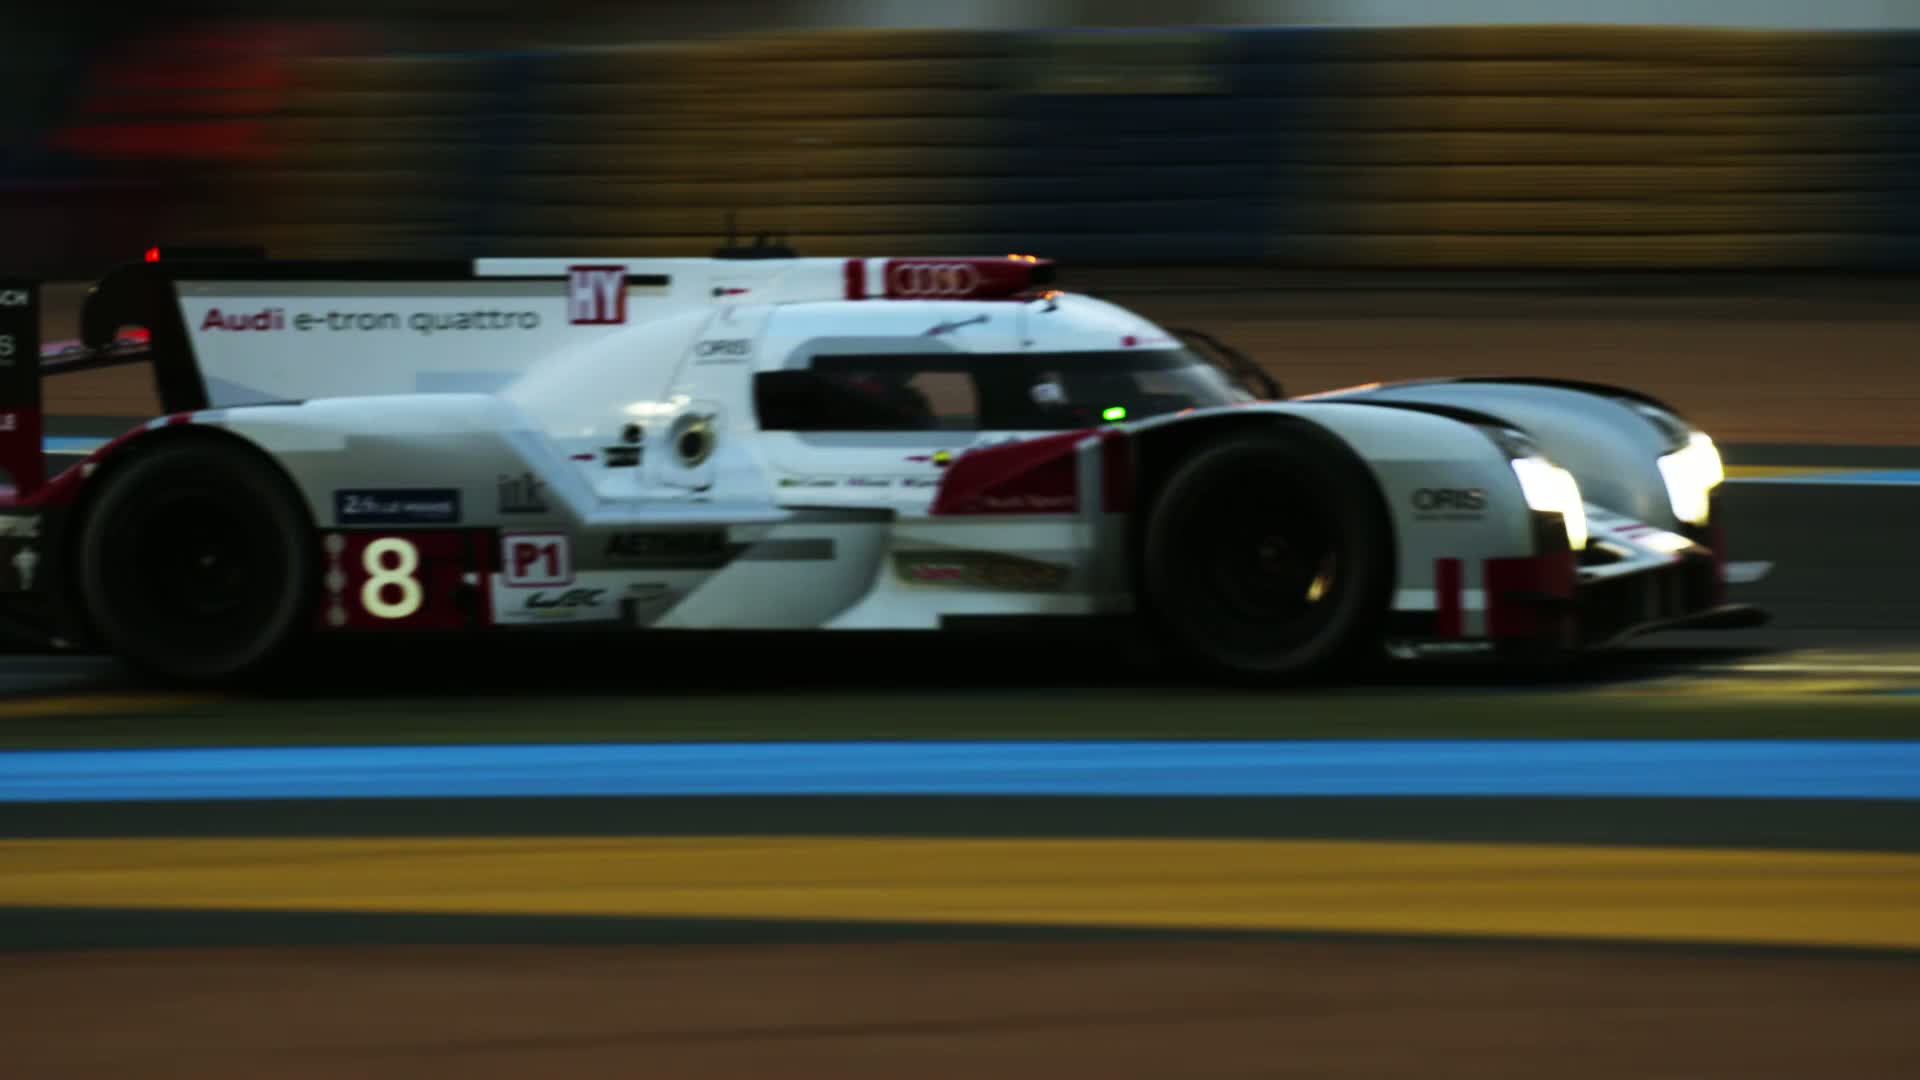 Motorsport, 60 Seconds of Audi Sport, WEC, Le Mans, e-tron, Qualifying